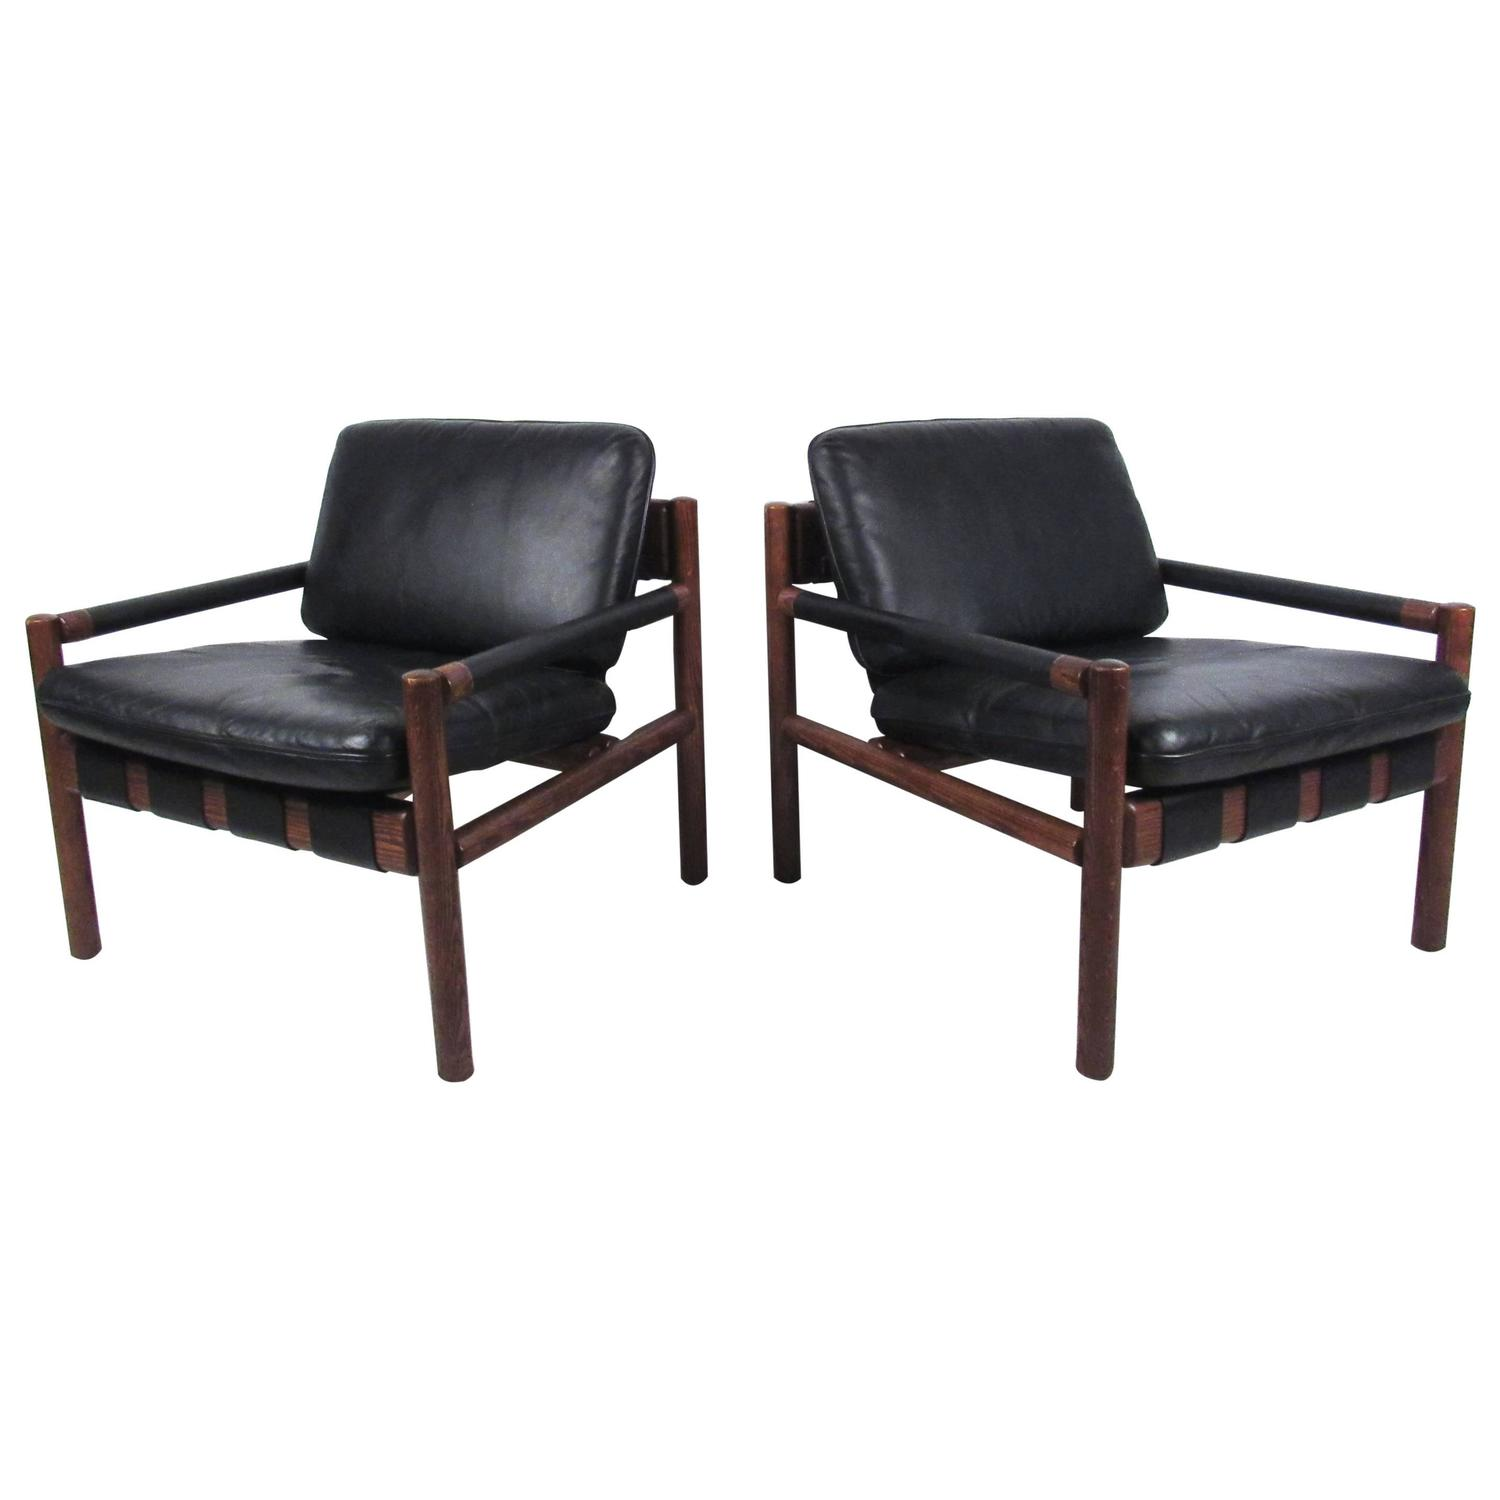 Pair Mid Century Modern Rosewood And Leather Lounge Chairs At 1stdibs